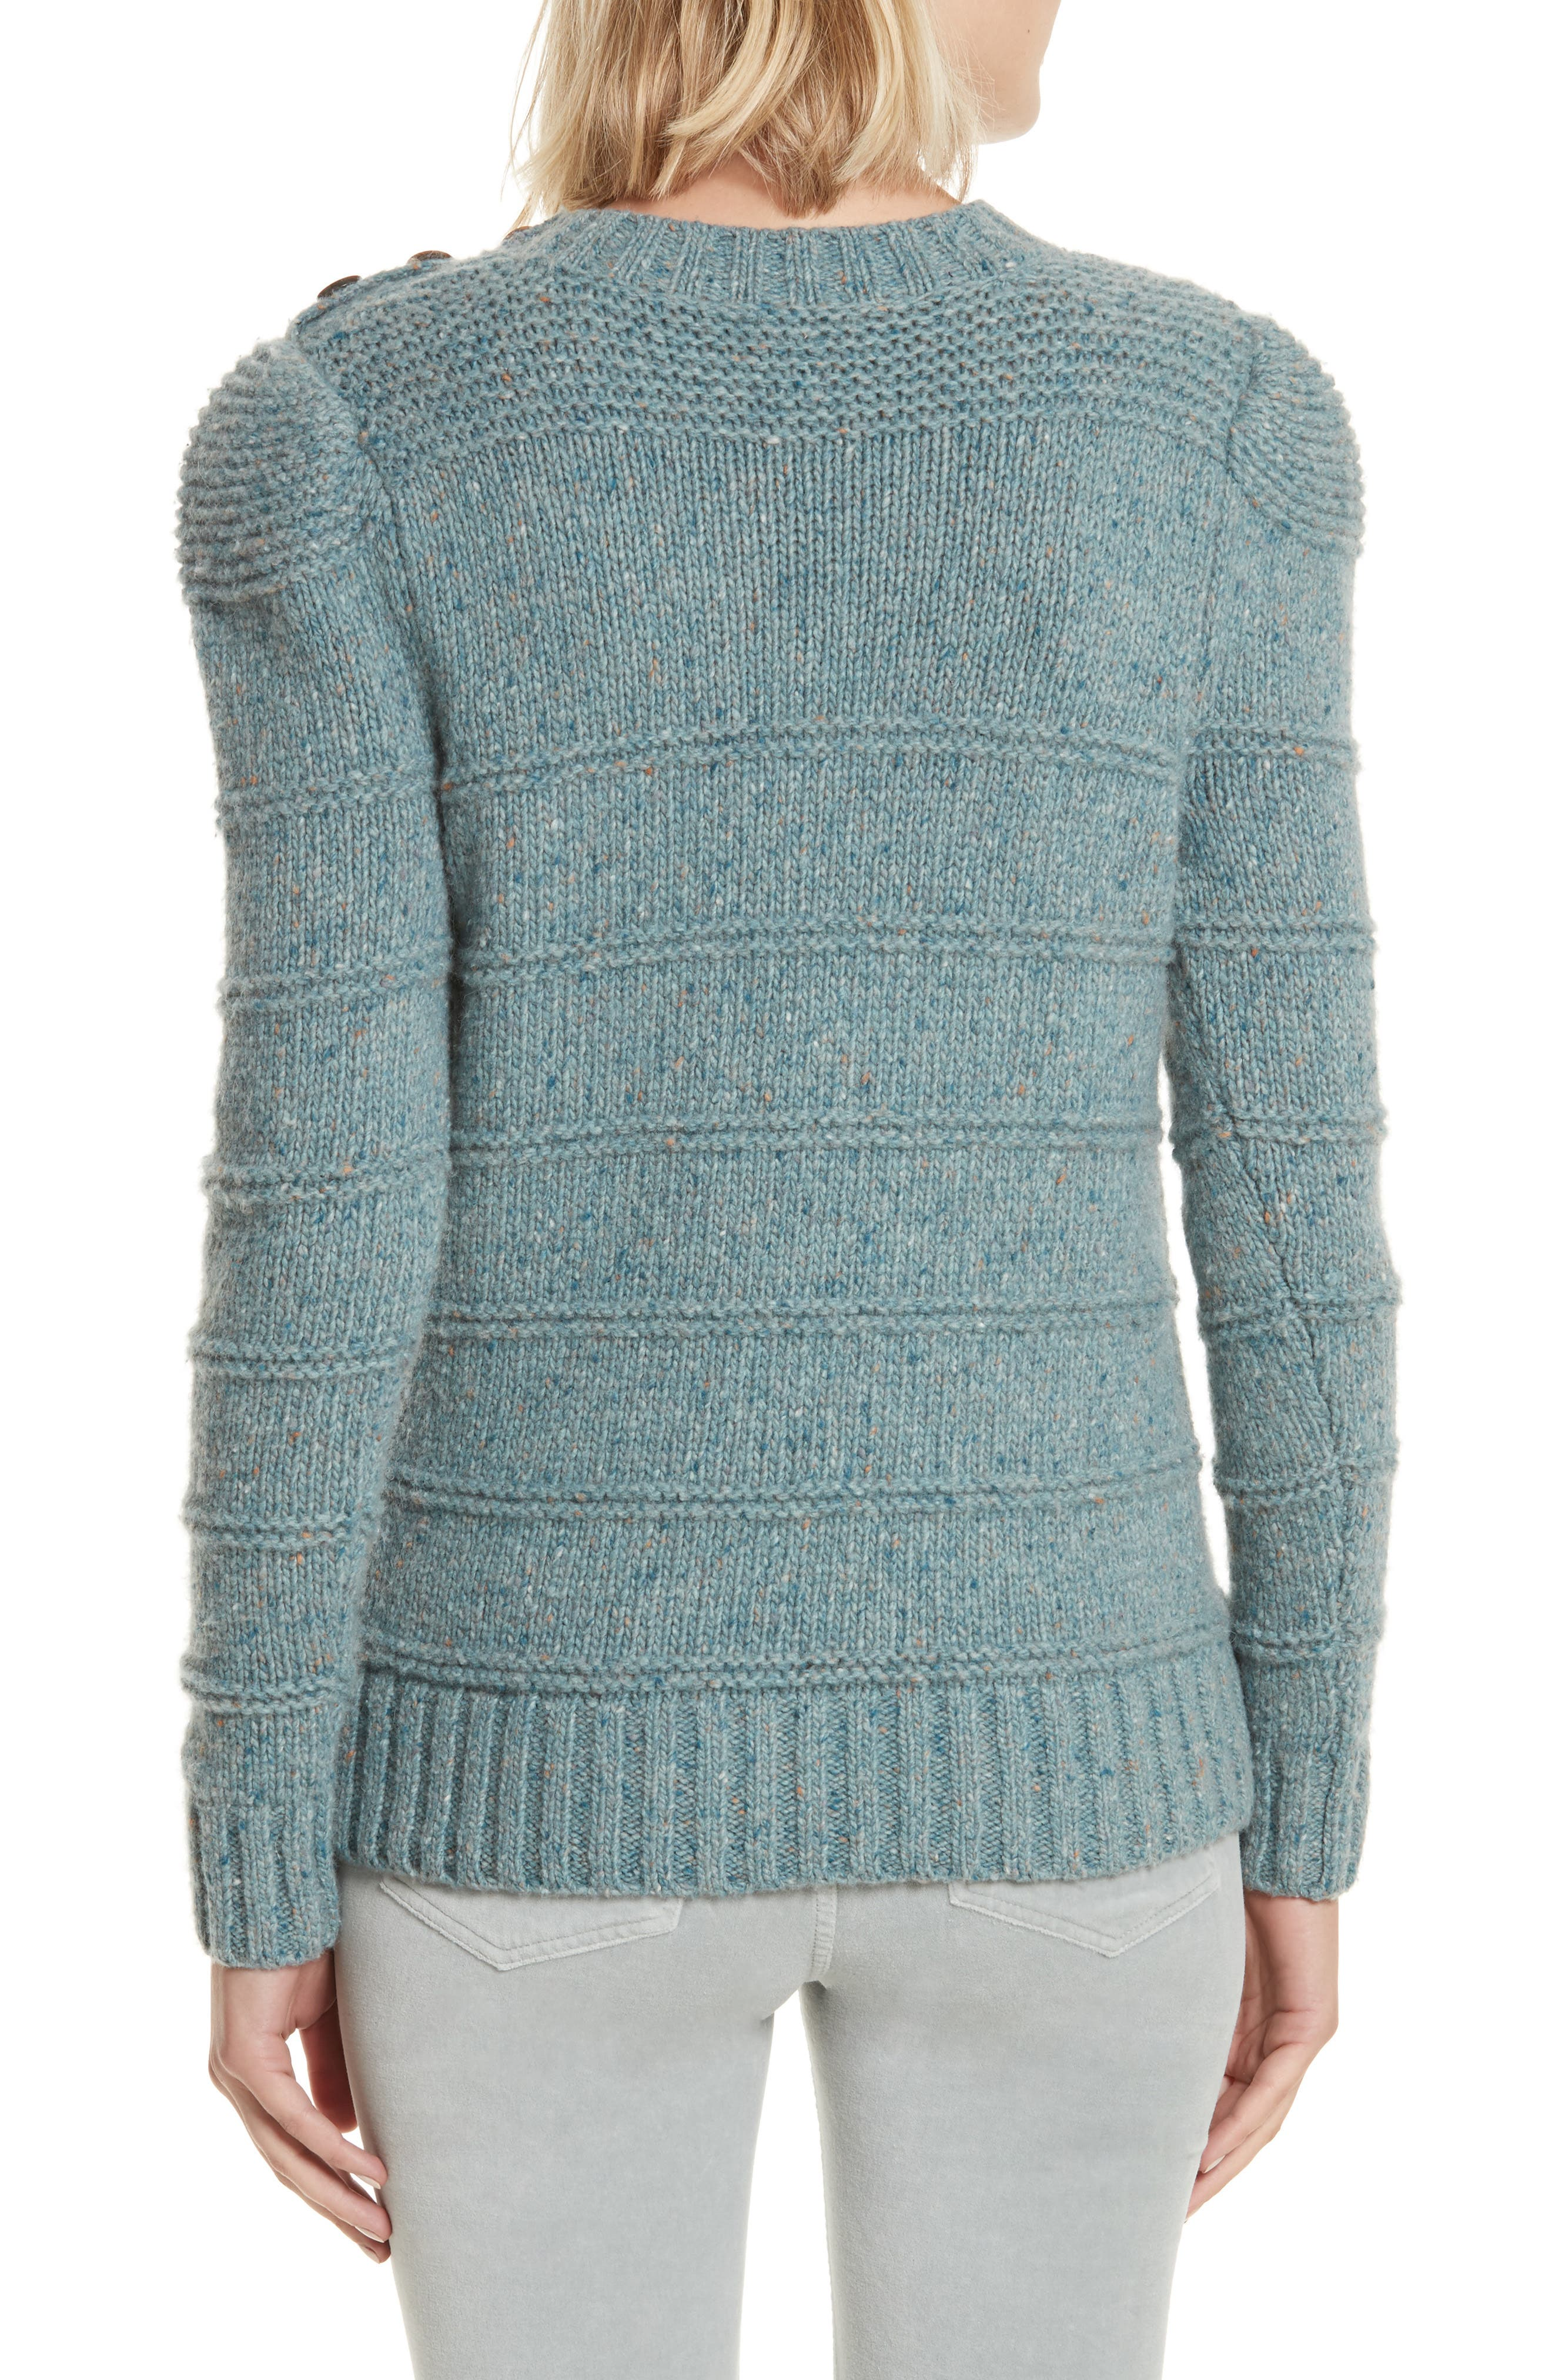 Donegal Tweed Pullover,                             Alternate thumbnail 2, color,                             Sea Mist